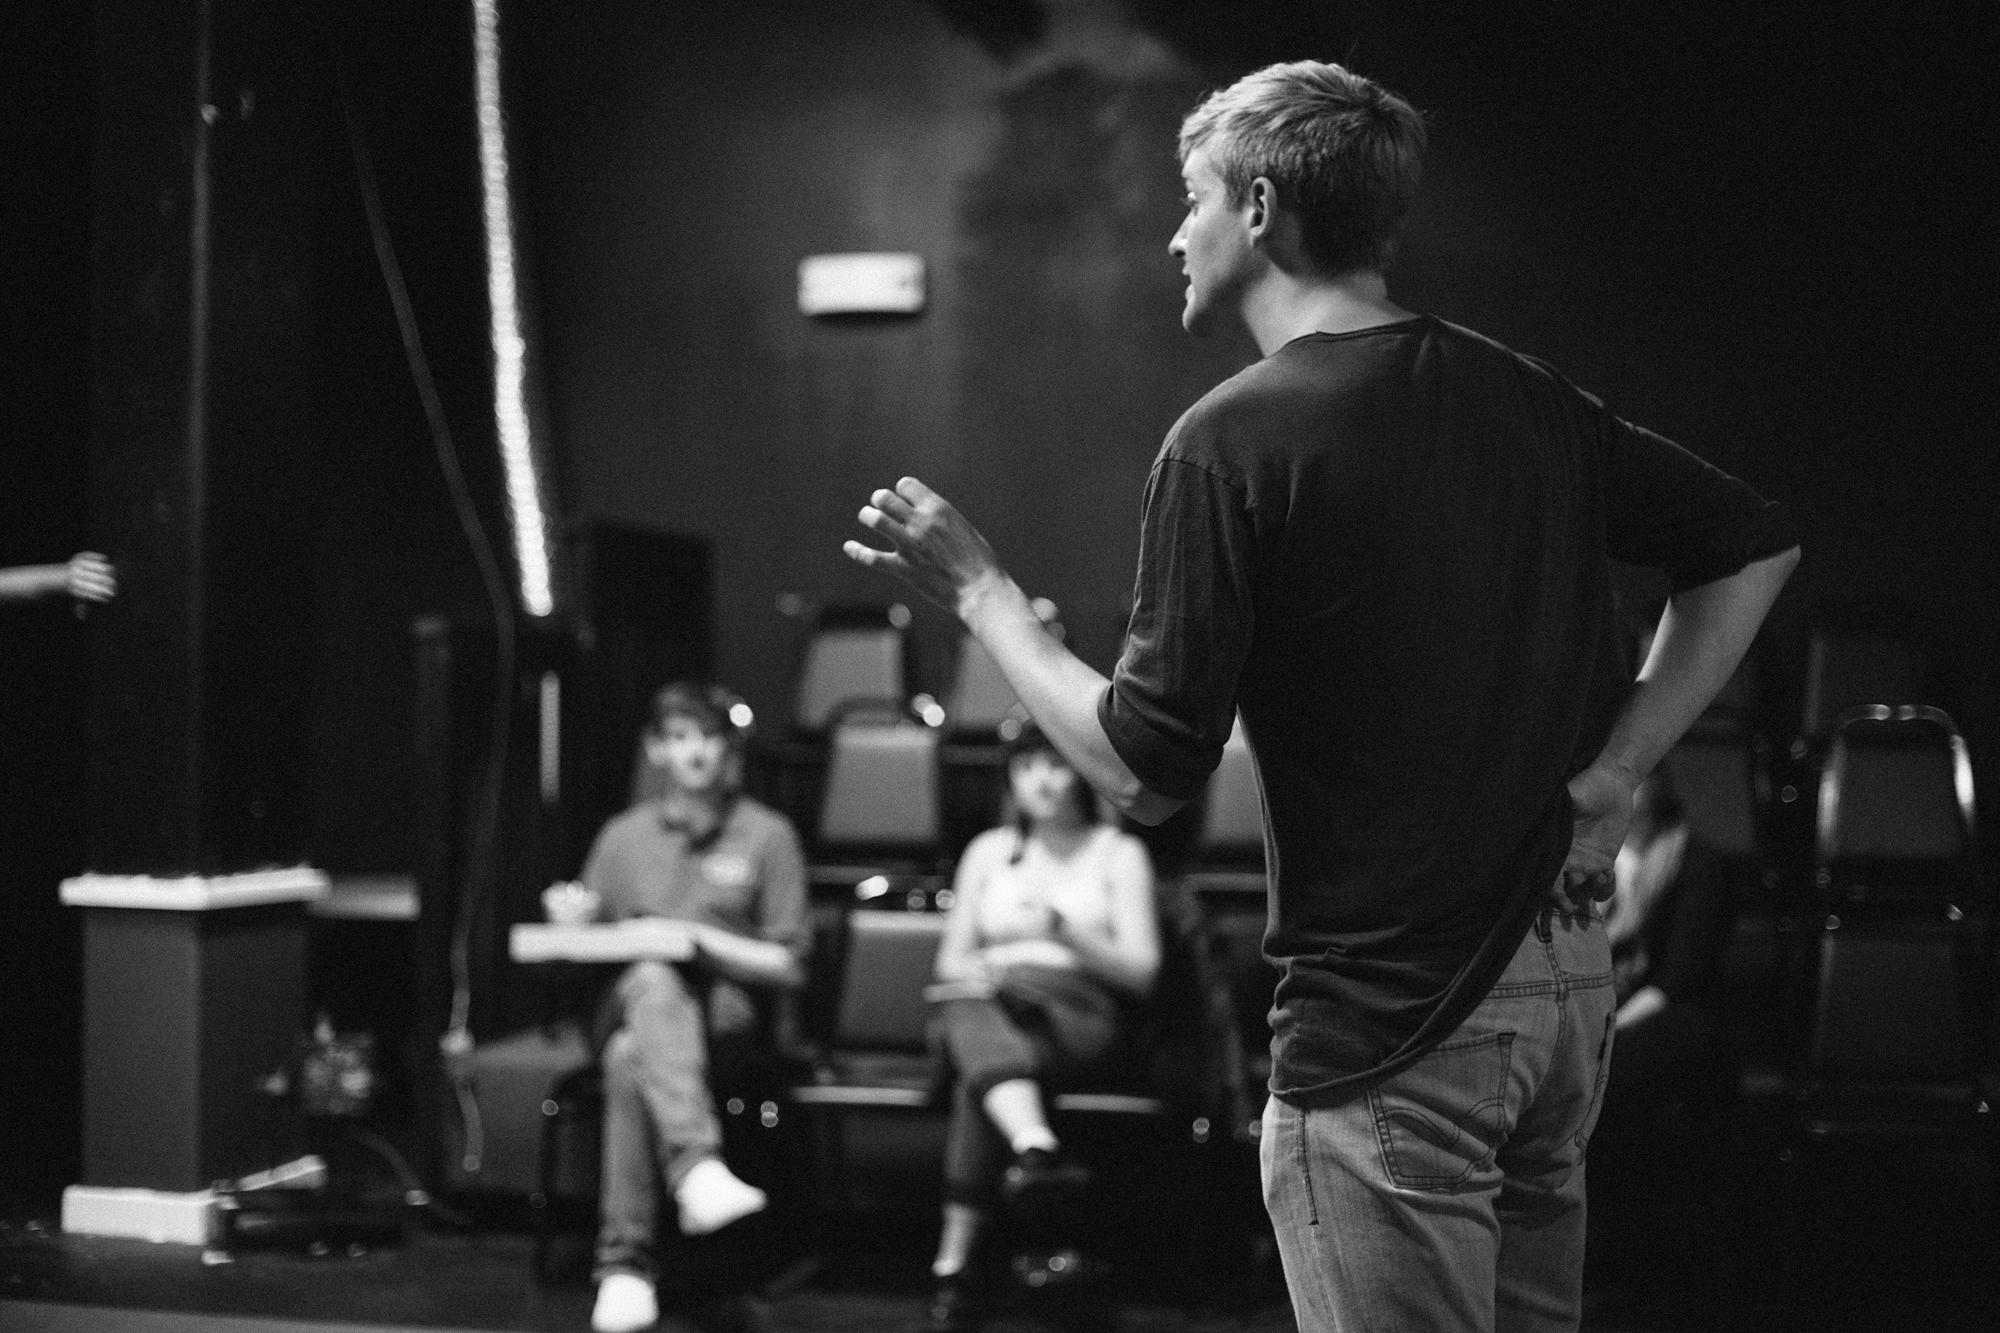 """Director Christopher Chase gives immediate post-performance feedback to the cast of """"I Love You, You're Perfect, Now Change,"""" in San Francisco's Bindlestiff Studio, days before the production run began. The Broadway birthed musical comedy features a limited cast of five, that play multiple characters throughout the show, with breakneck speed wardrobe and set changes happening between scenes constantly throughout the show."""